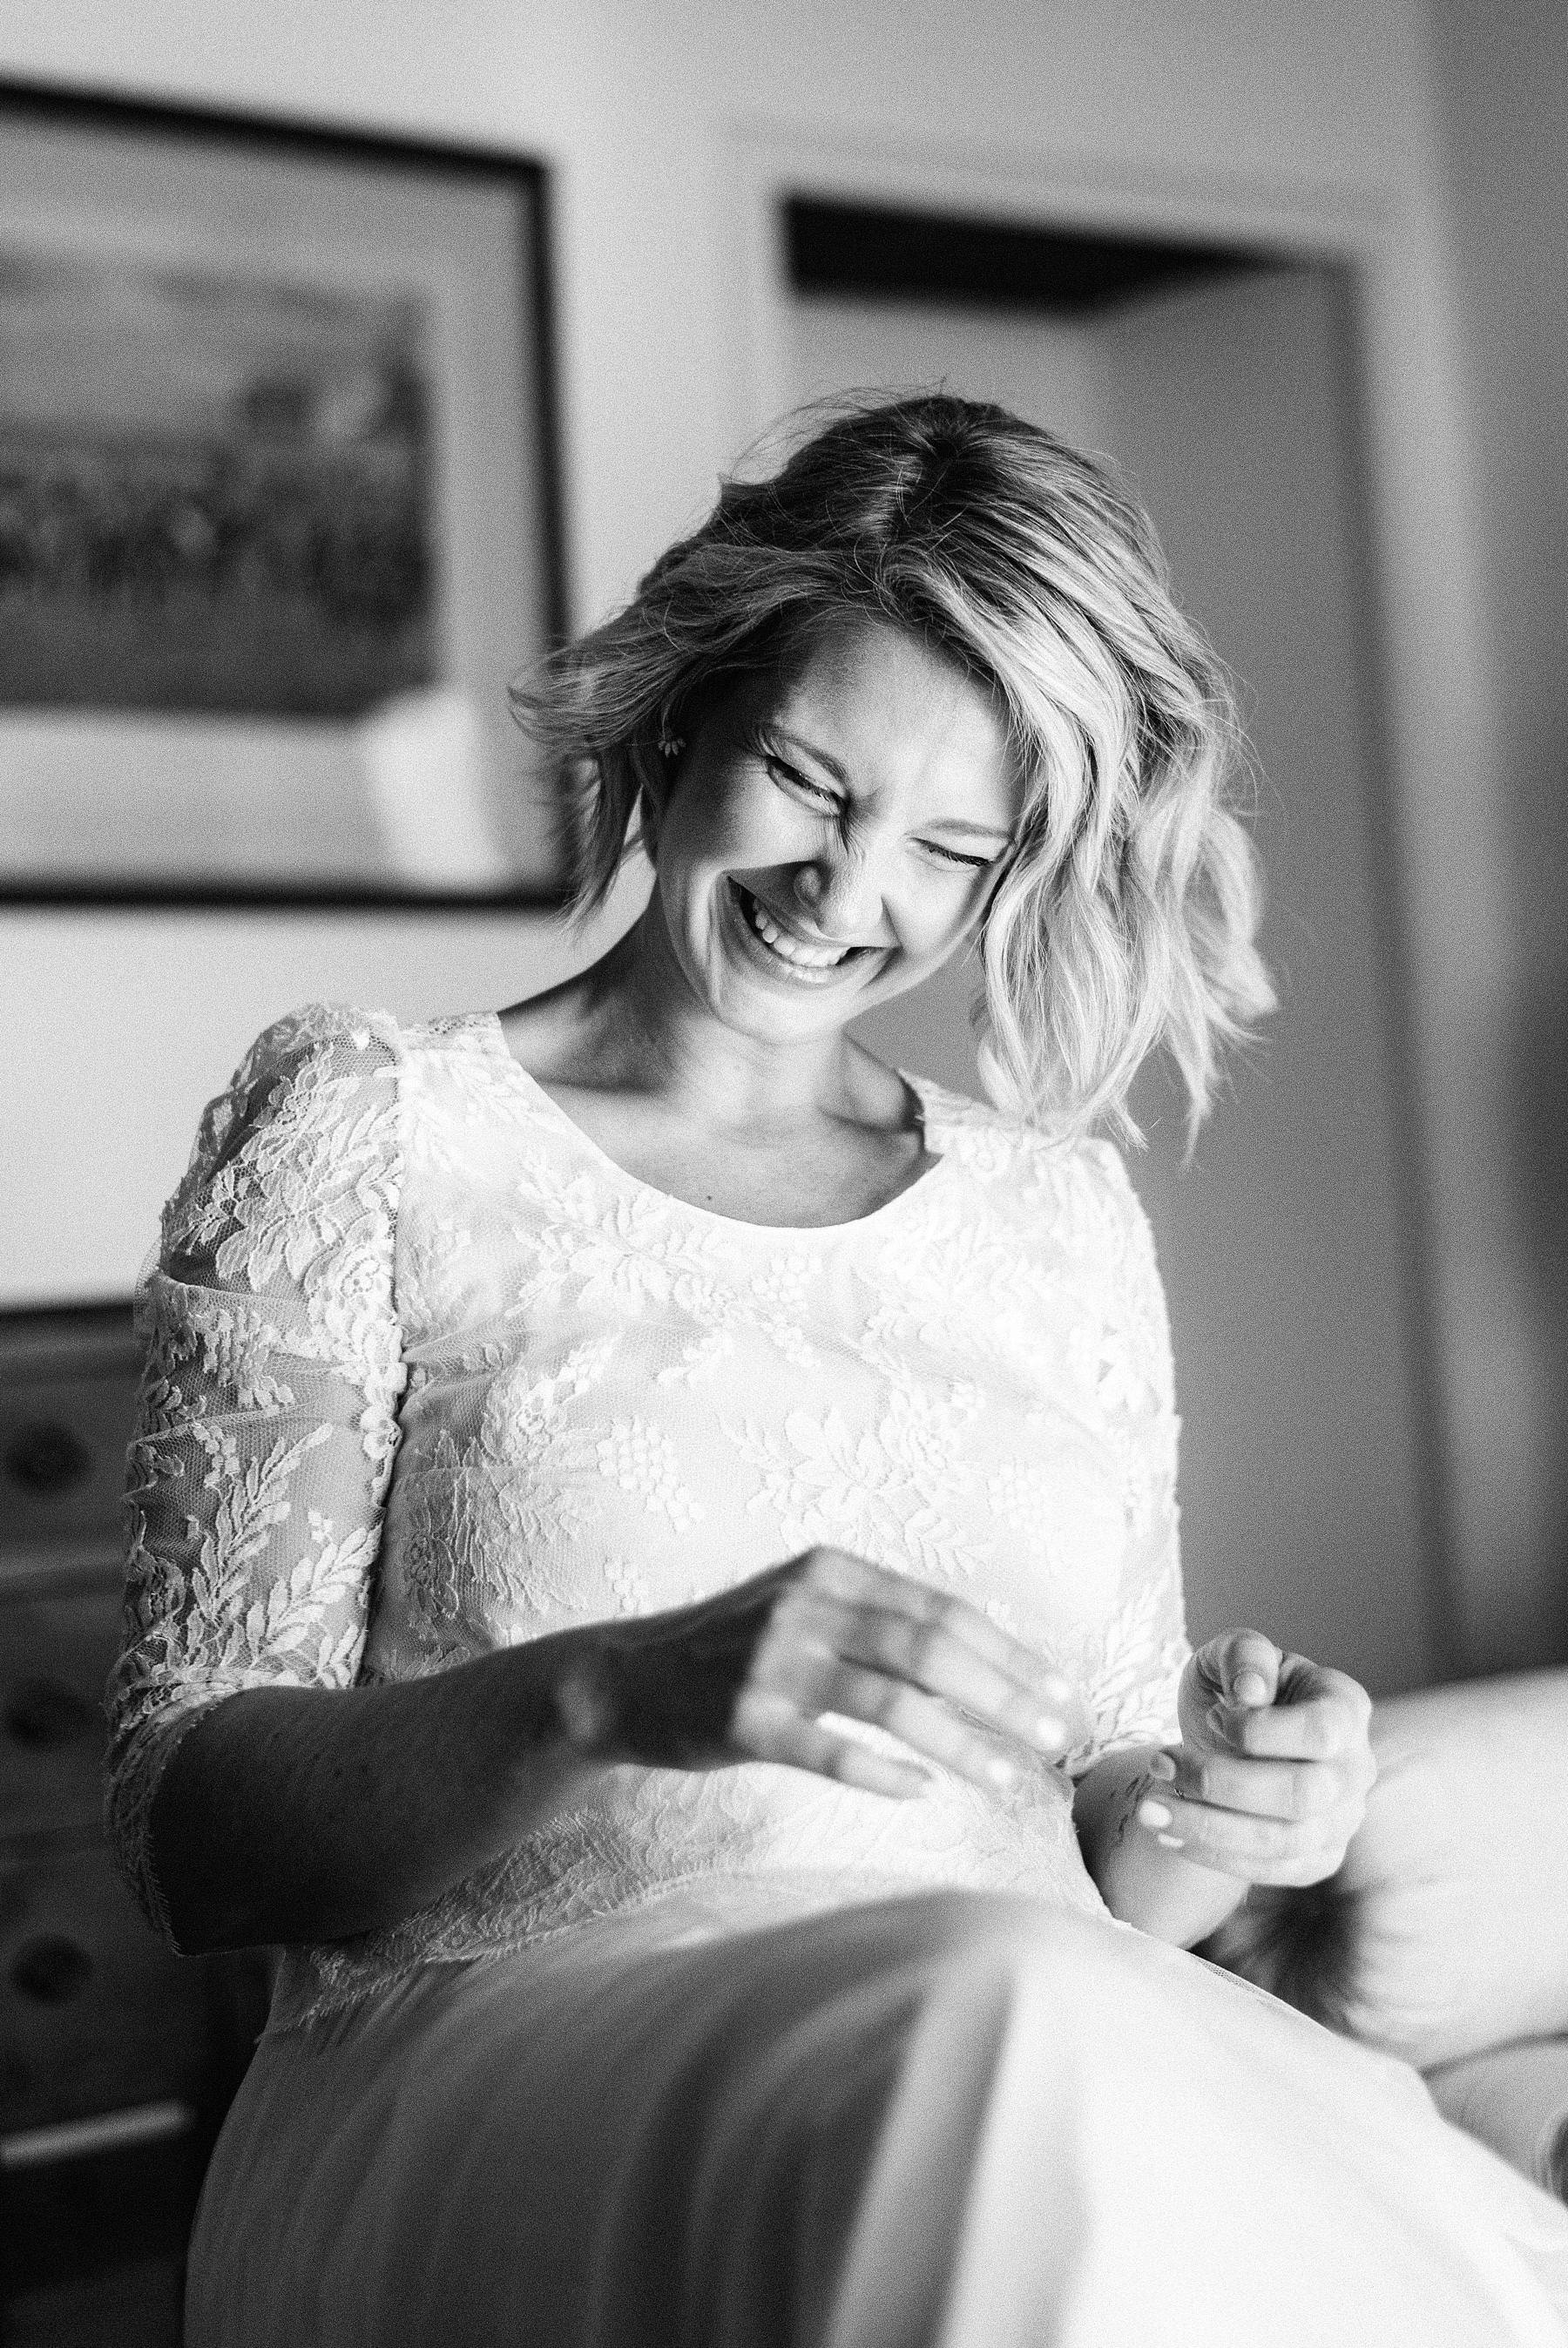 Lively and bright bride Isabella in her Laure de Sagazan wedding gown one of the most smiling and sunny soul IÕve ever met during my career as professional photographer. Destination wedding in Tuscany at historic residence Montelucci Country Resort